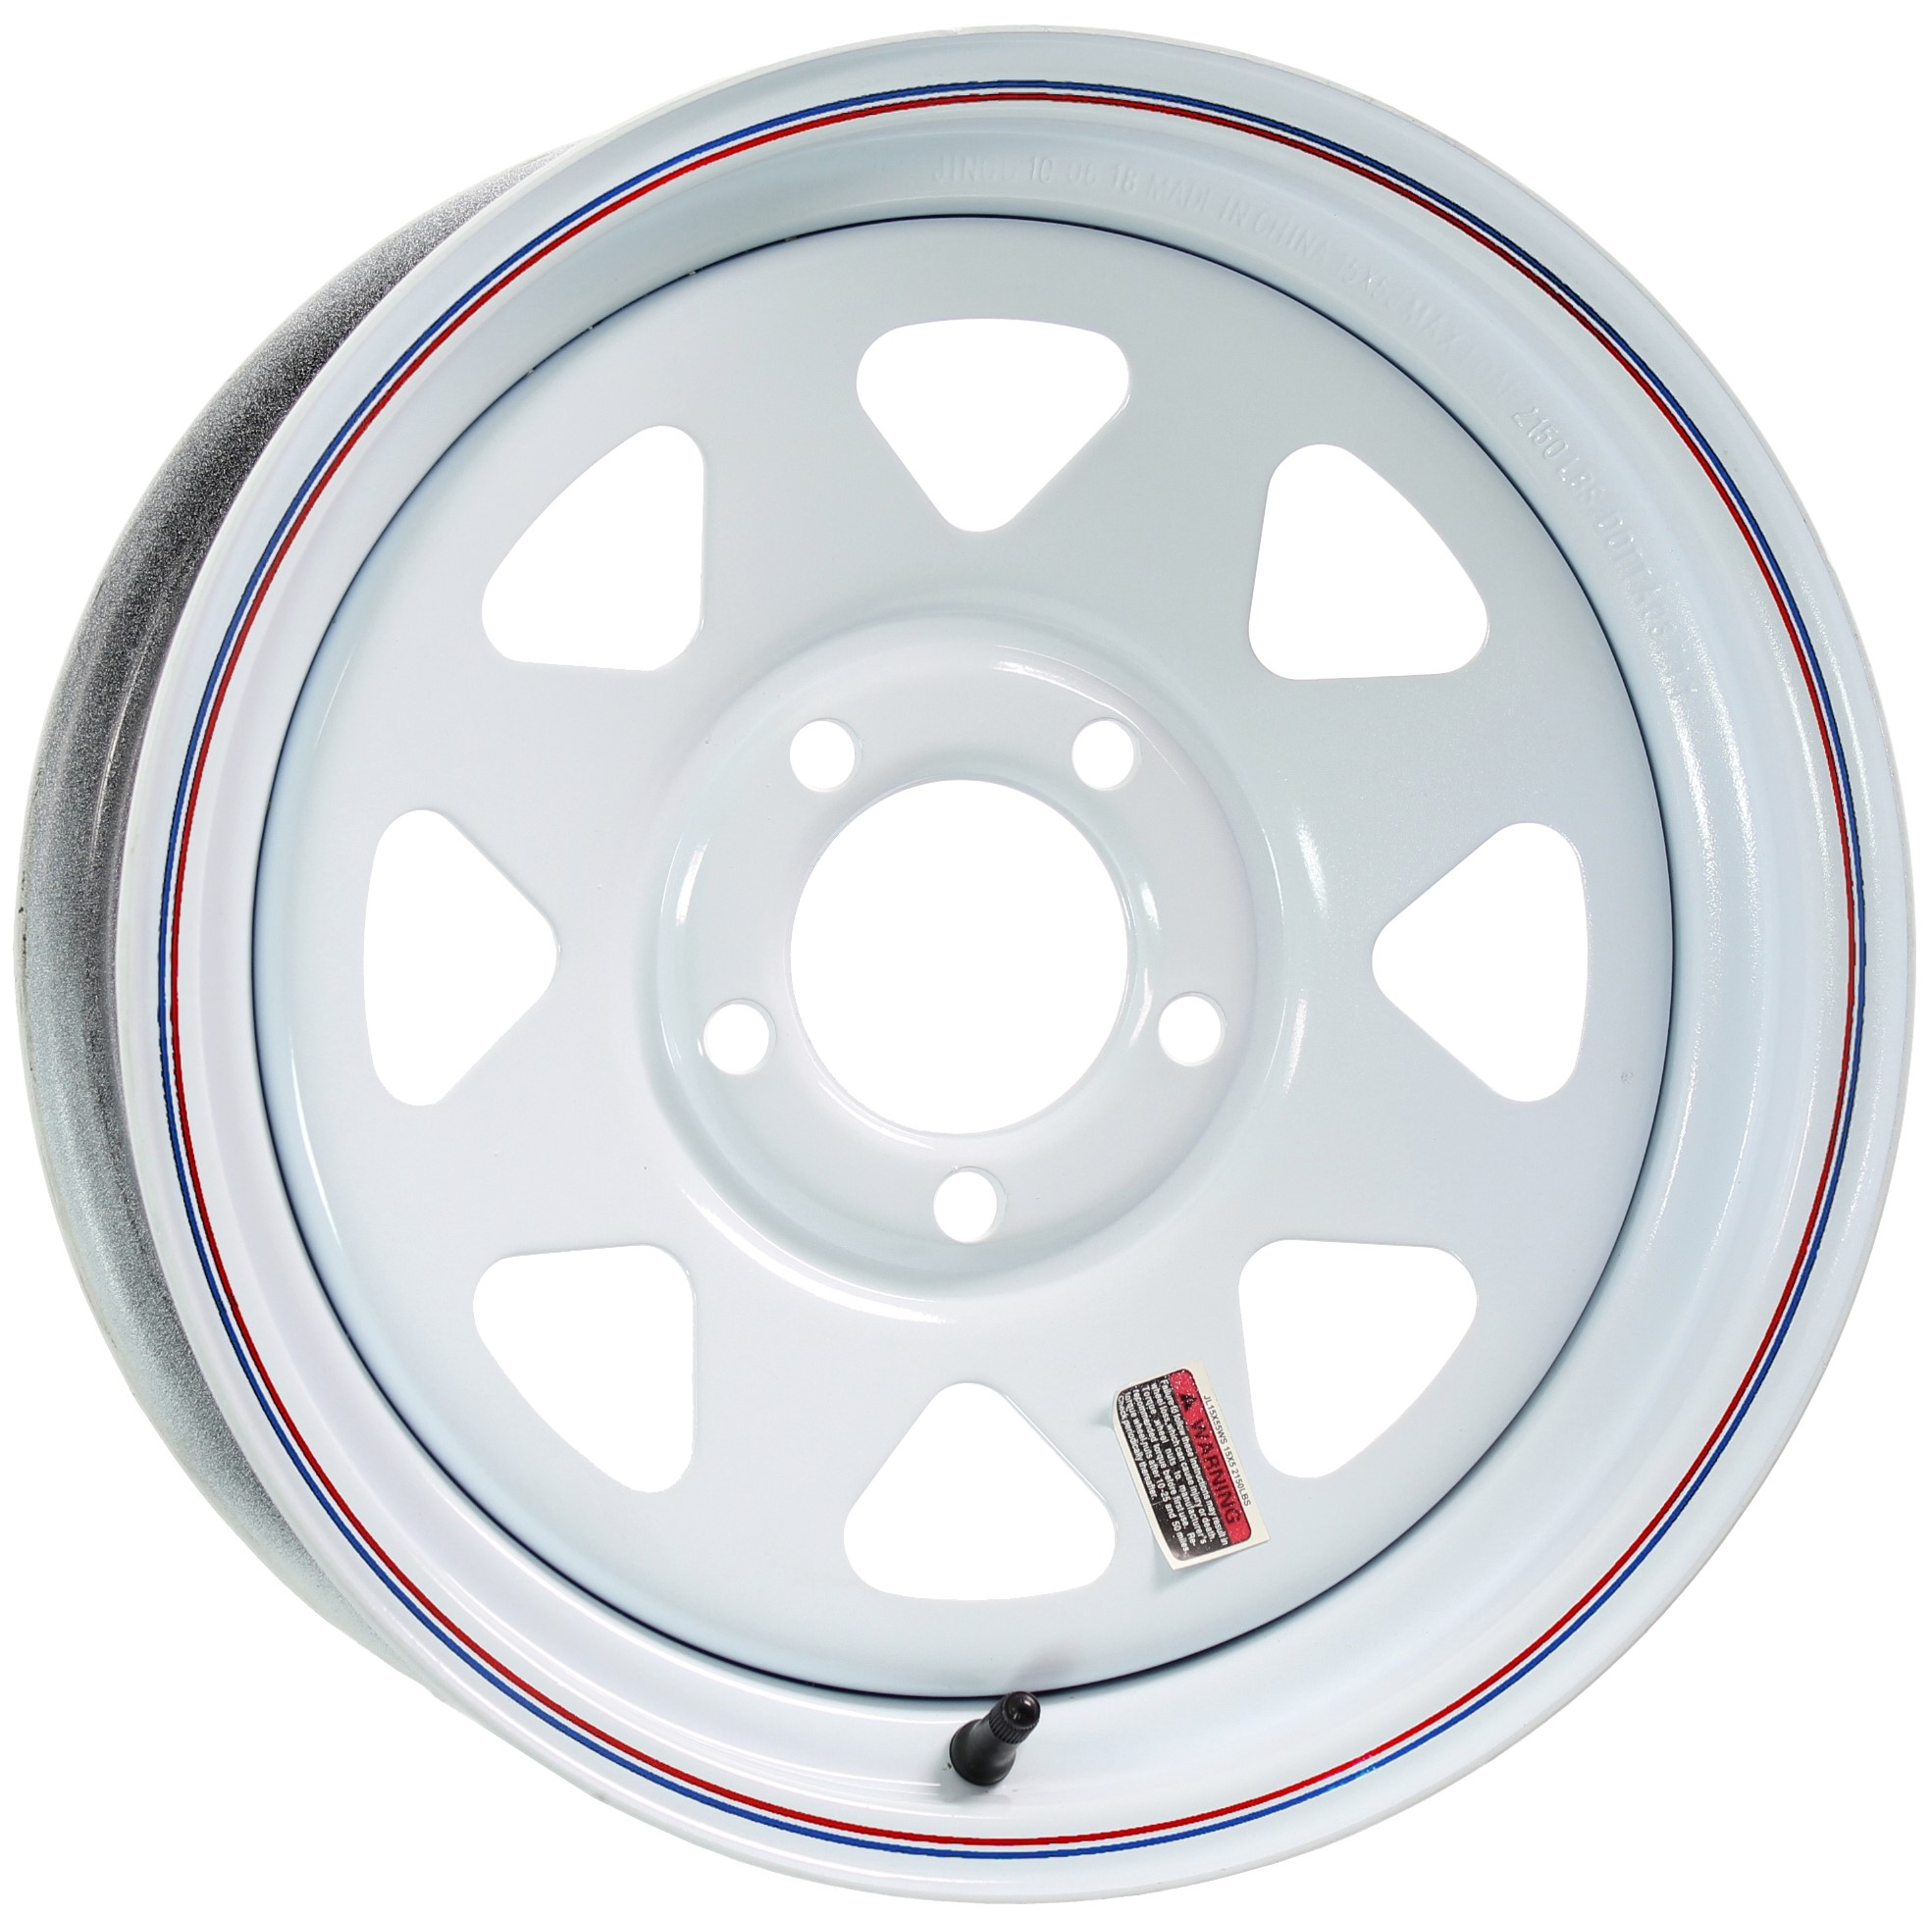 15x5 5 on 4.75, White Spoke with Stripes Steel Trailer Wheel Image